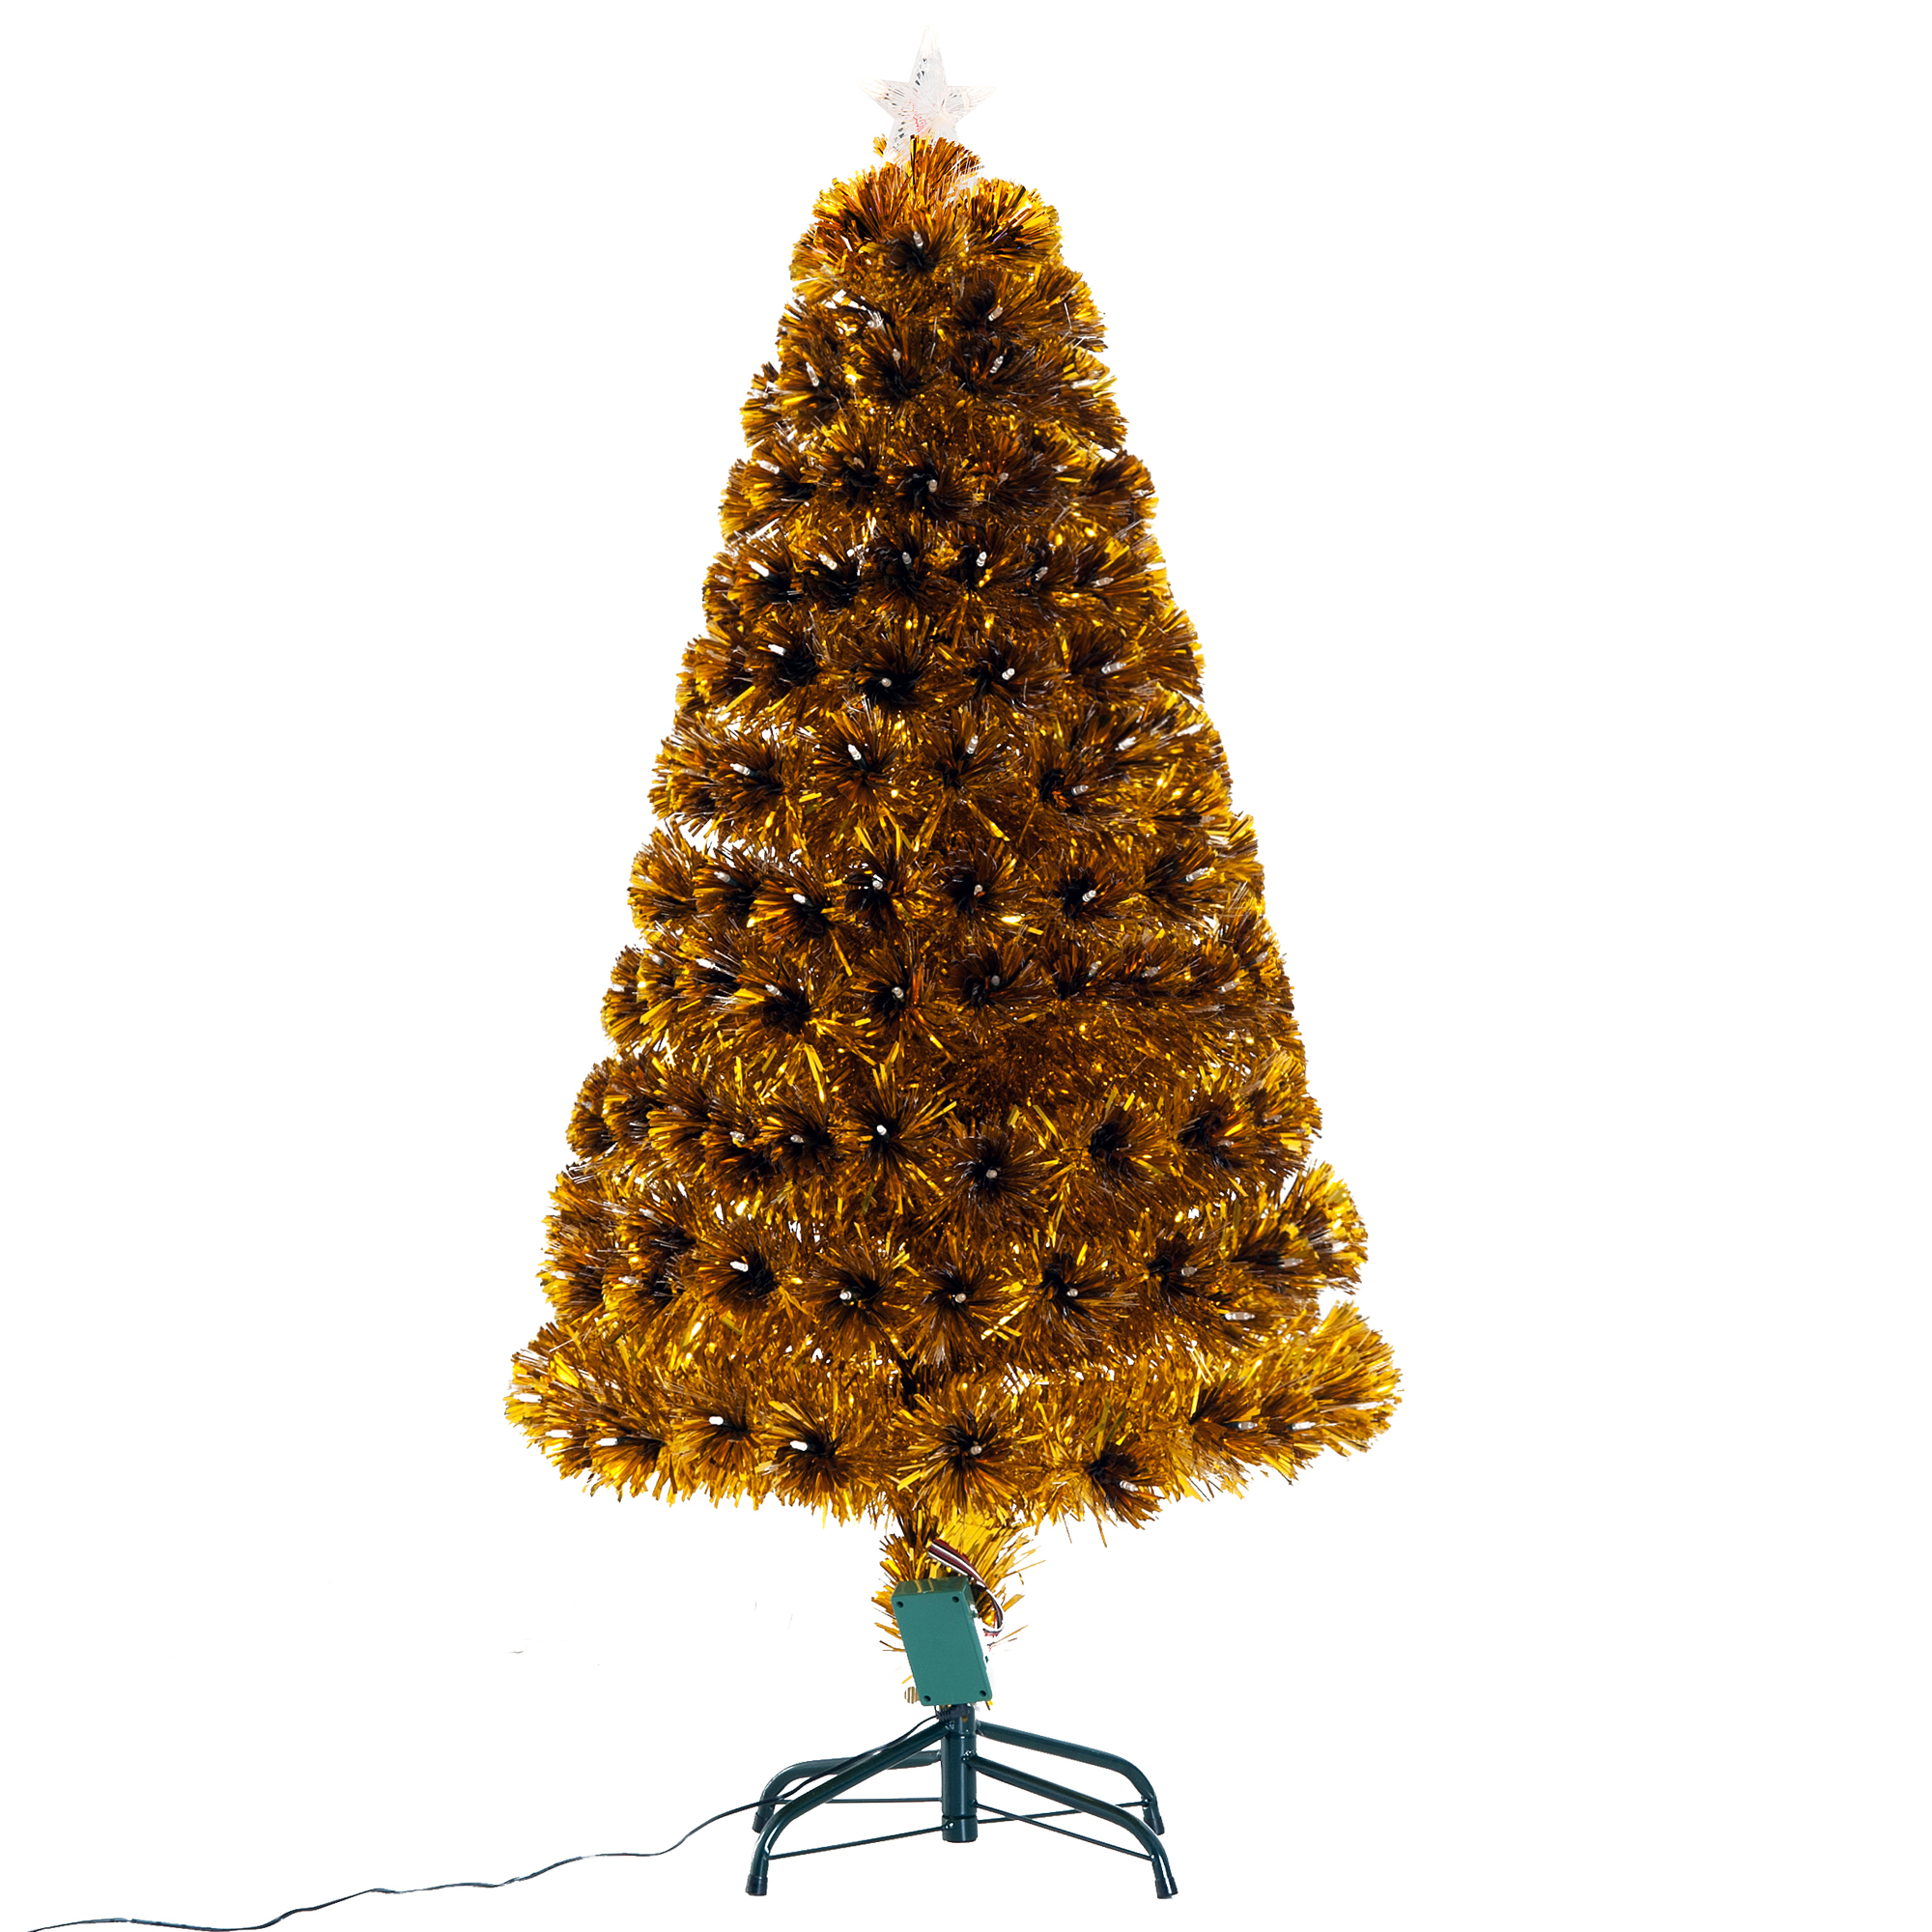 Image of £57.99 HOMCOM Artificial Christmas Tree, 1.2m, Steel Stand / 1.2m 4ft Fibre Optic Tree Xmas Pre-lit LED Holiday Décor with Metal Entrance Light 150 Tips 830-203 5056029807576